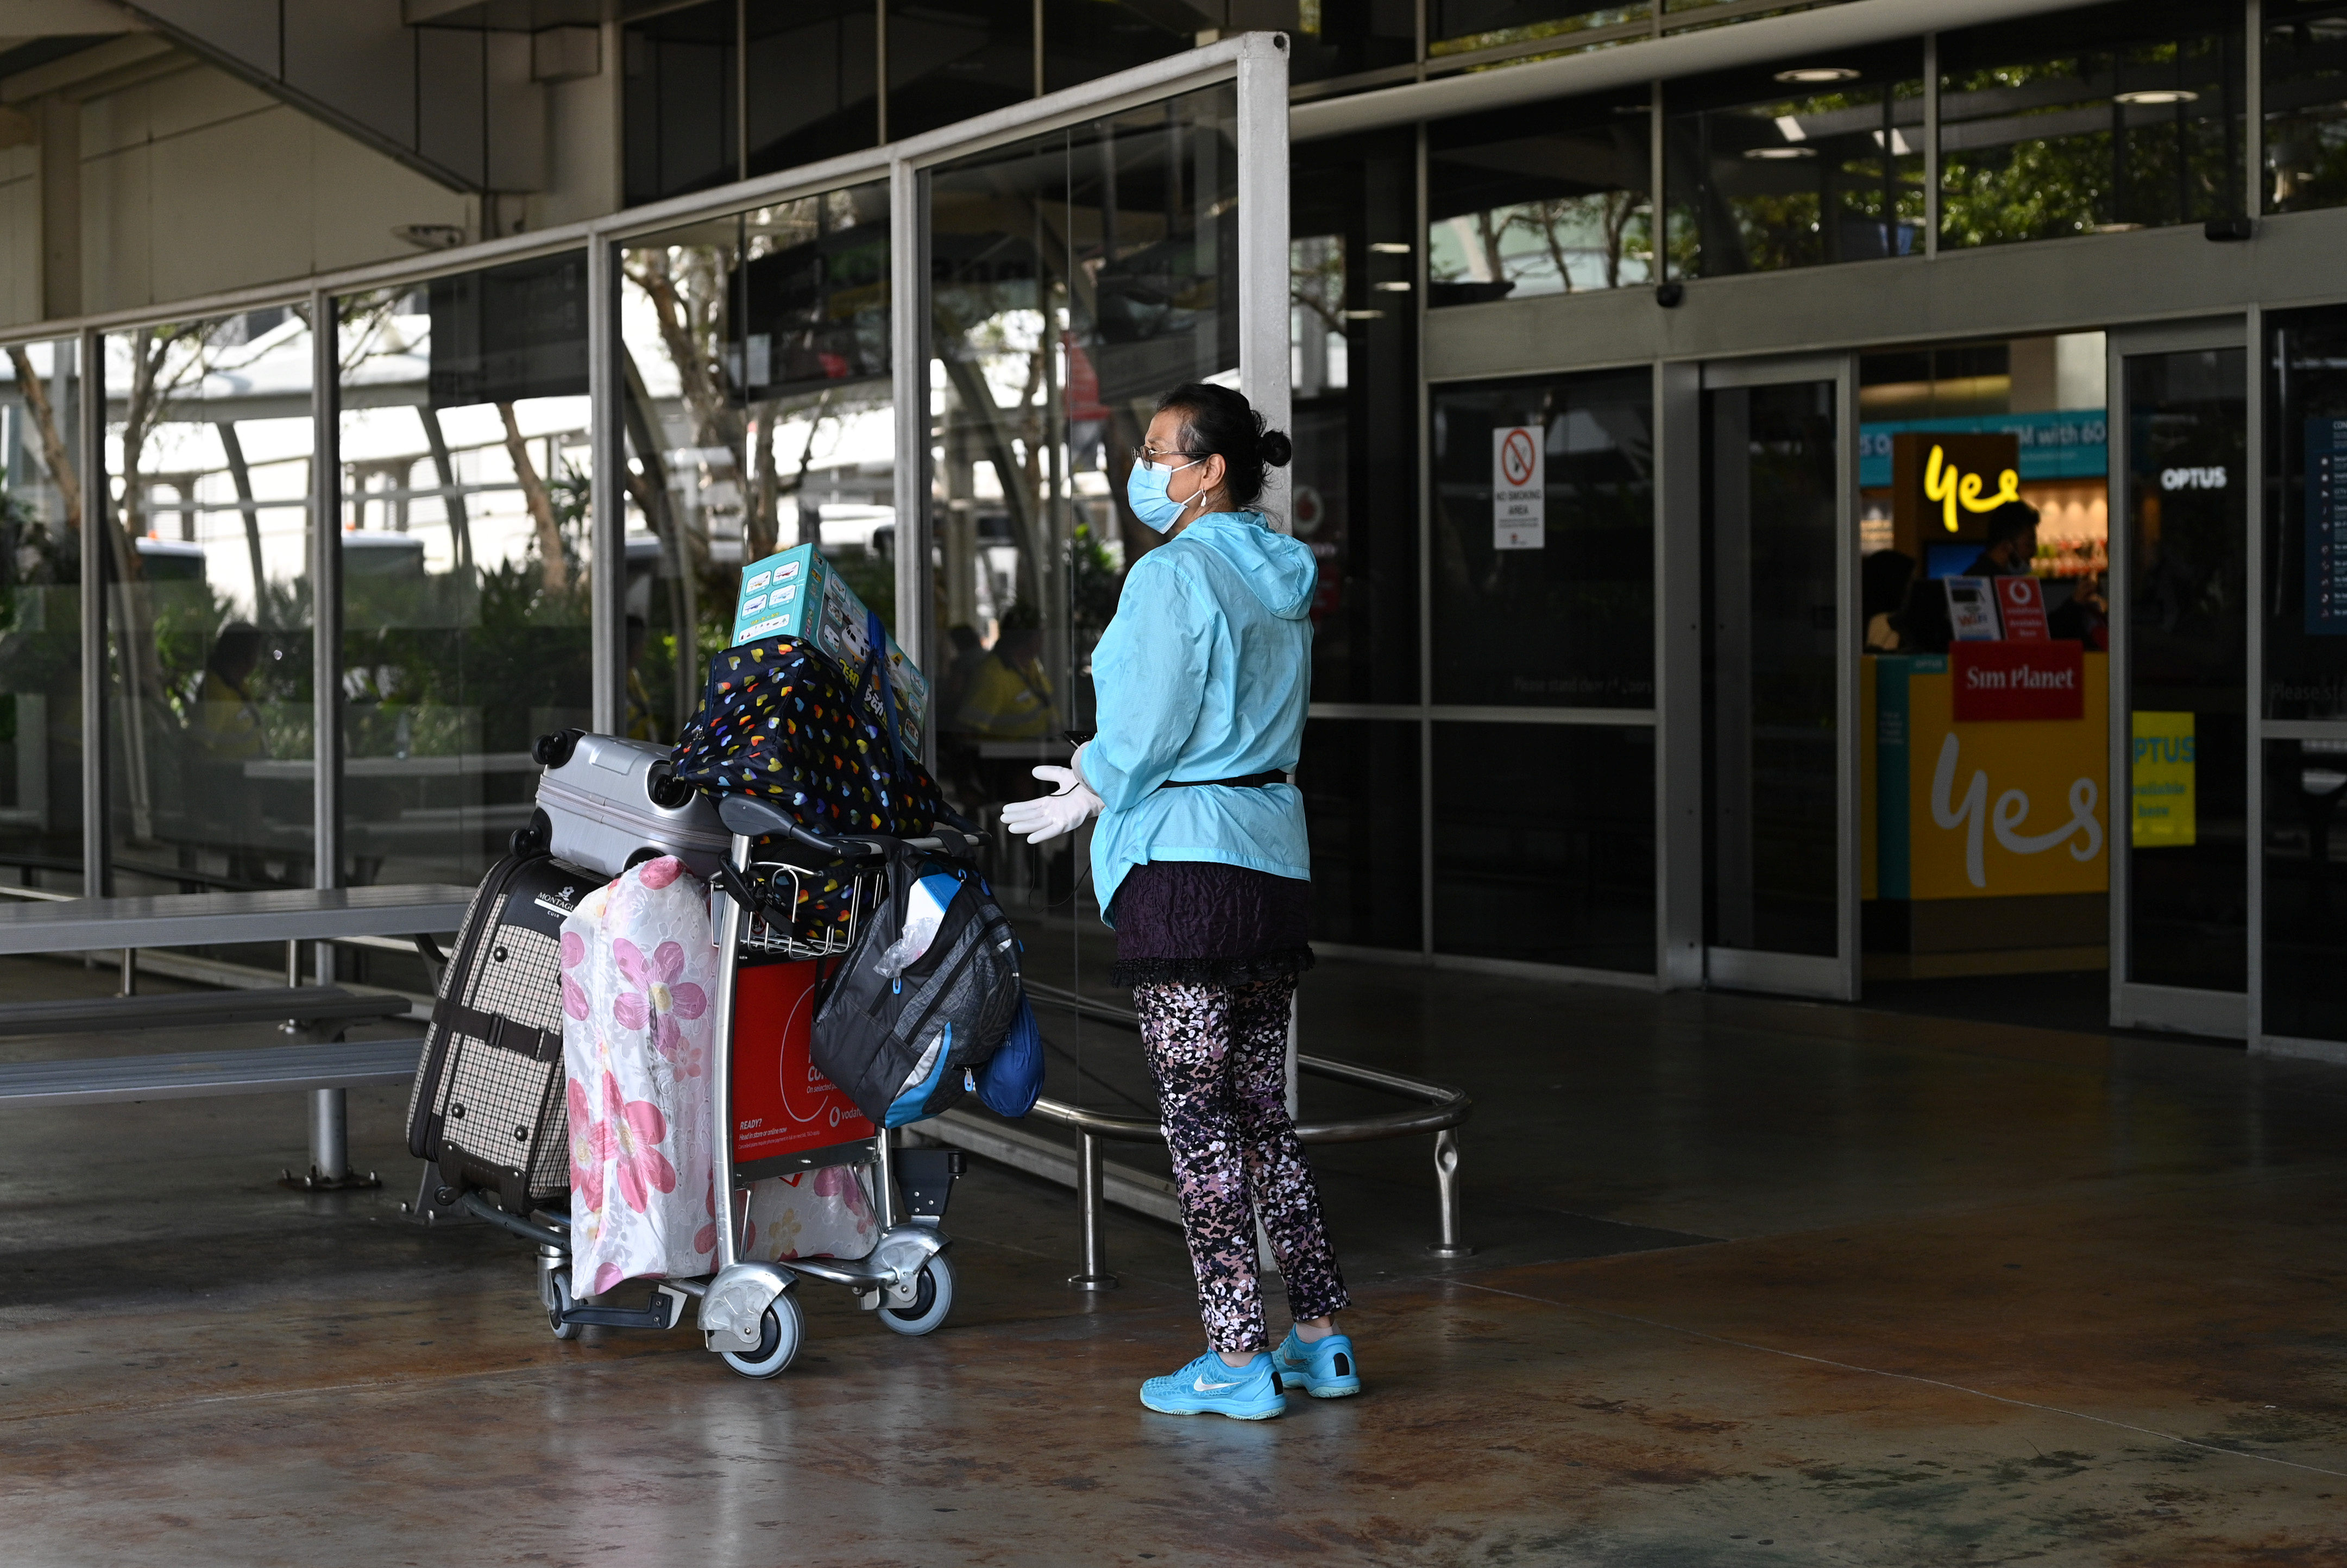 A traveler wearing a protective face mask and gloves departs the arrivals section of the international terminal of Kingsford Smith International Airport the morning after Australia implemented an entry ban on non-citizens and non-residents intended to curb the spread of the coronavirus disease (COVID-19) in Sydney, Australia, March 21, 2020.  REUTERS/Loren Elliott